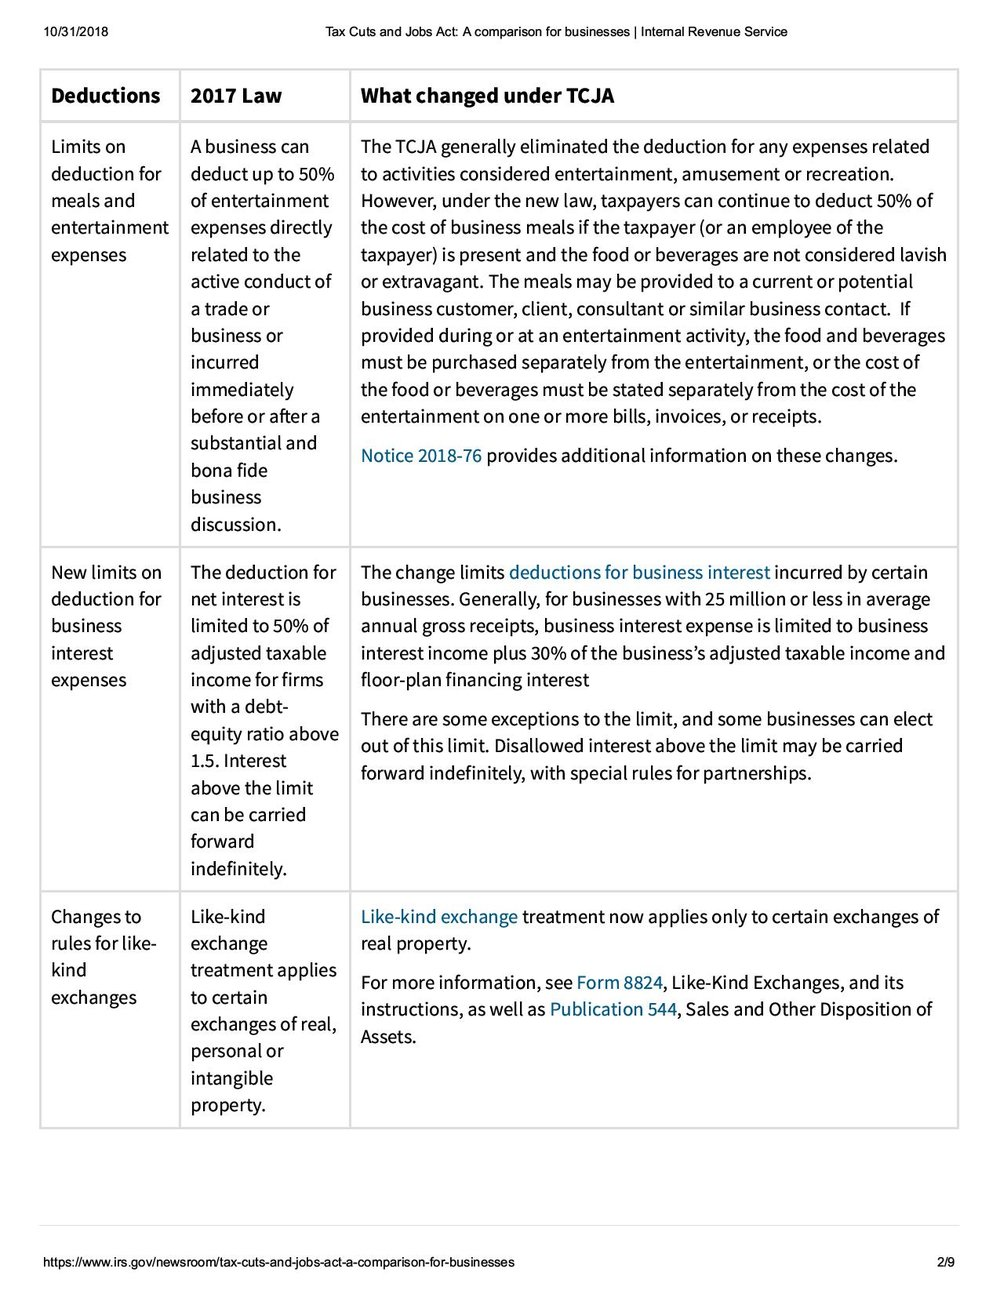 IRS Summary of Key Business Tax Law Changes in the Tax Cuts and Jobs Act posted 1 Nov 2018-page-002.jpg